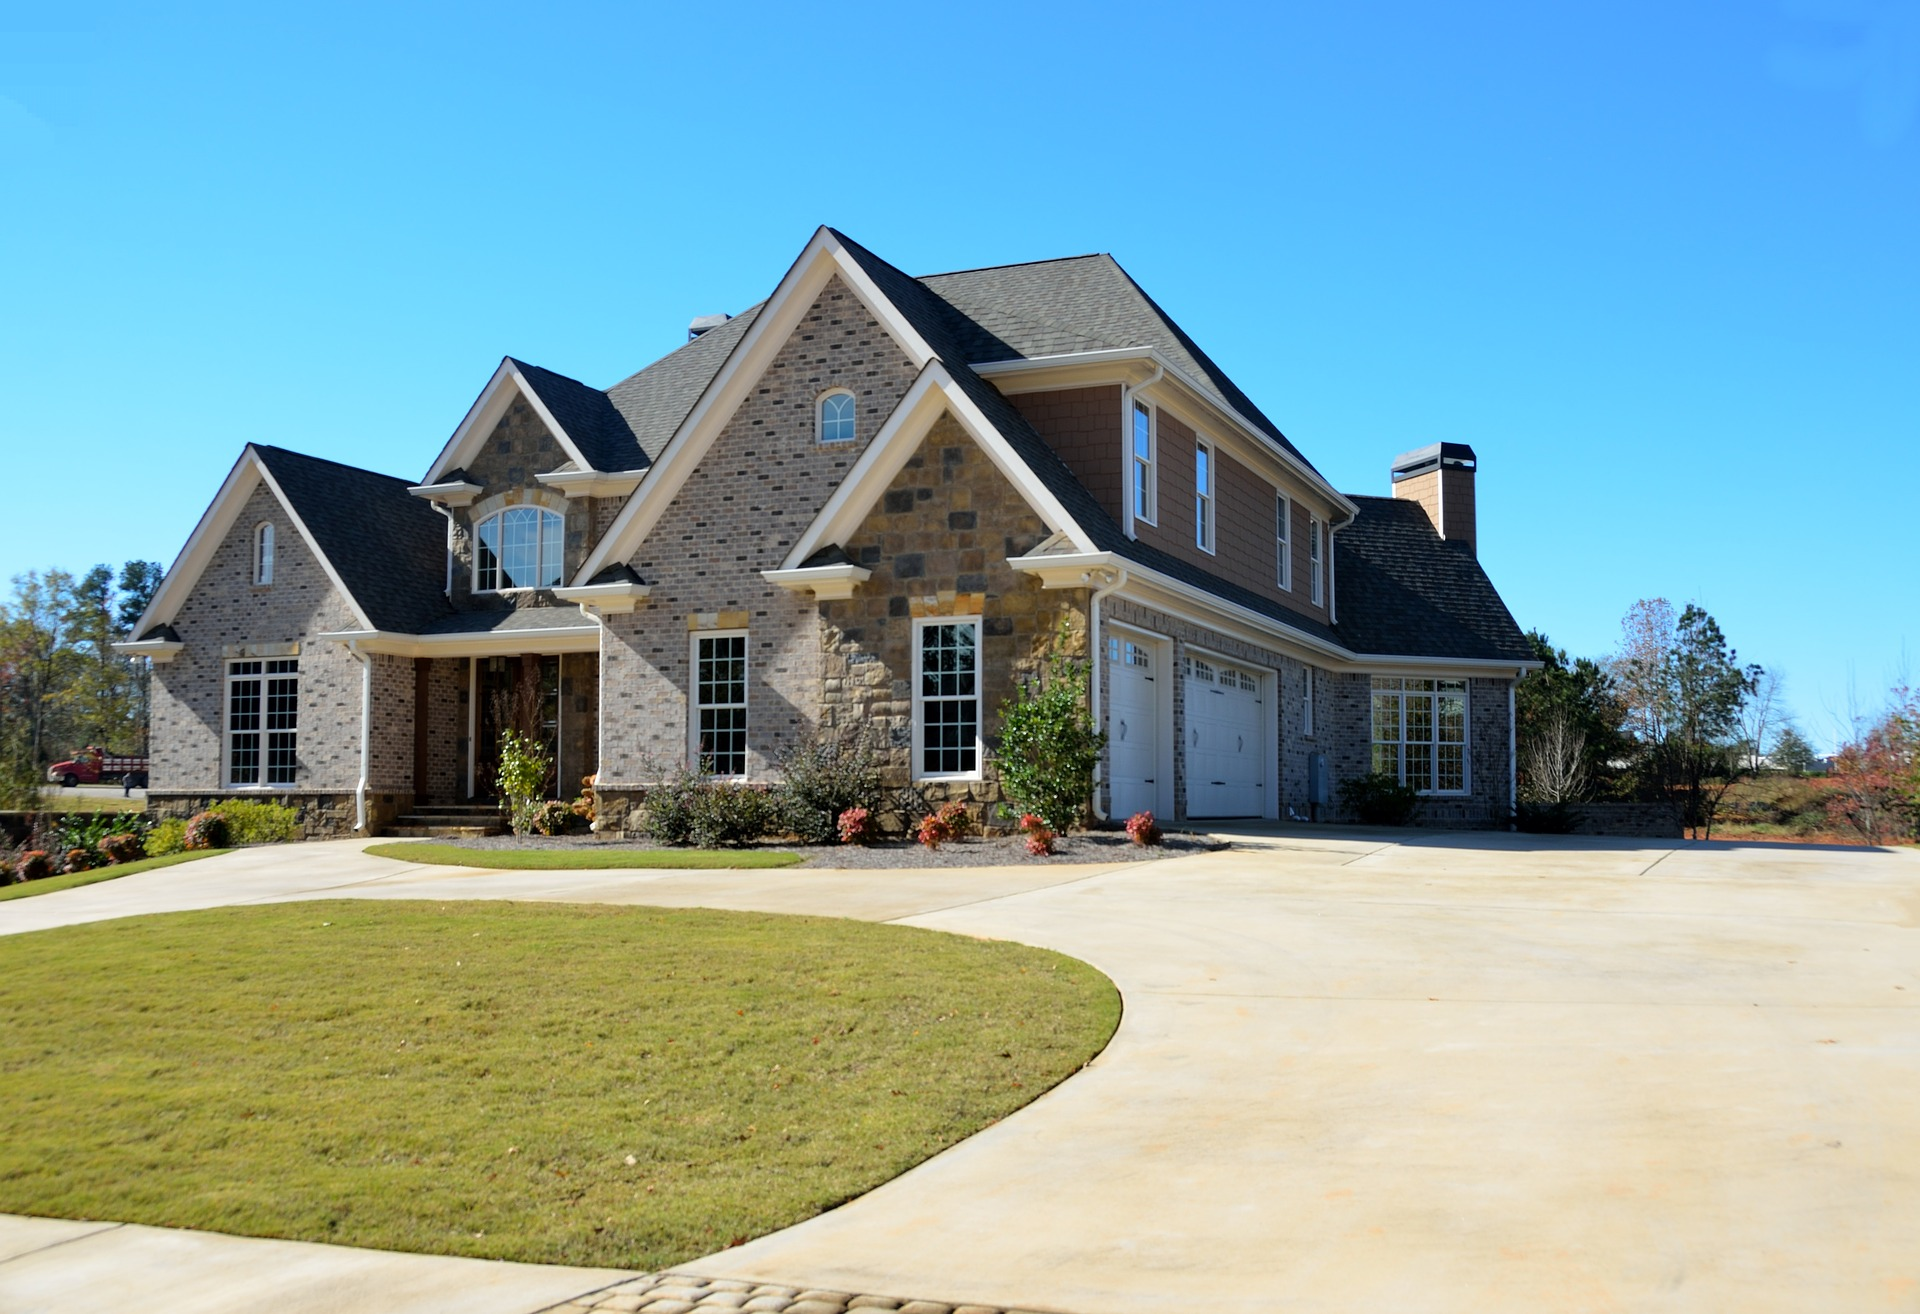 Build Your Dream Home on The Right Property